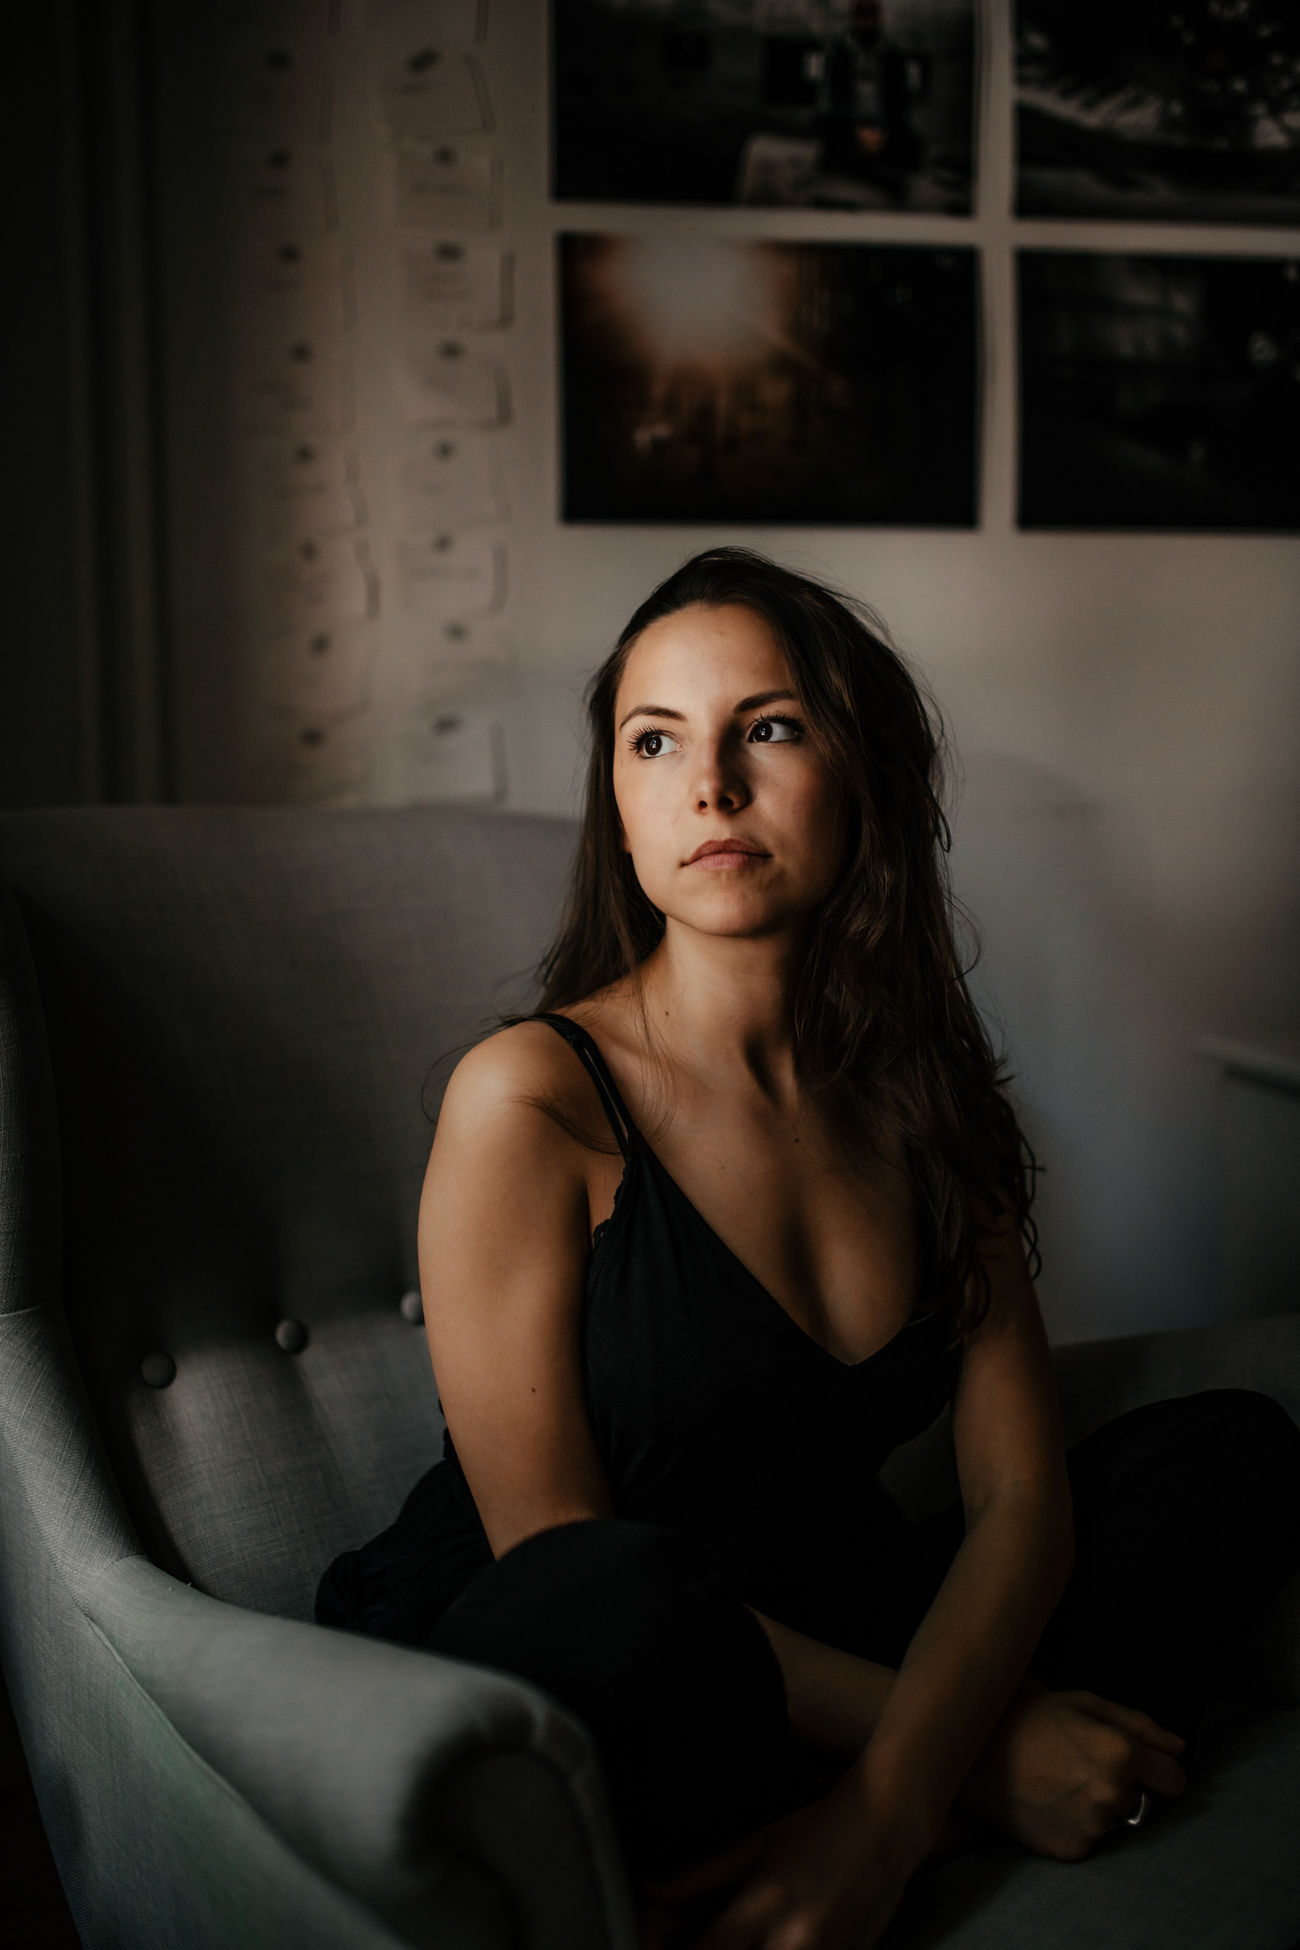 sitting, one person, looking at camera, portrait, beautiful woman